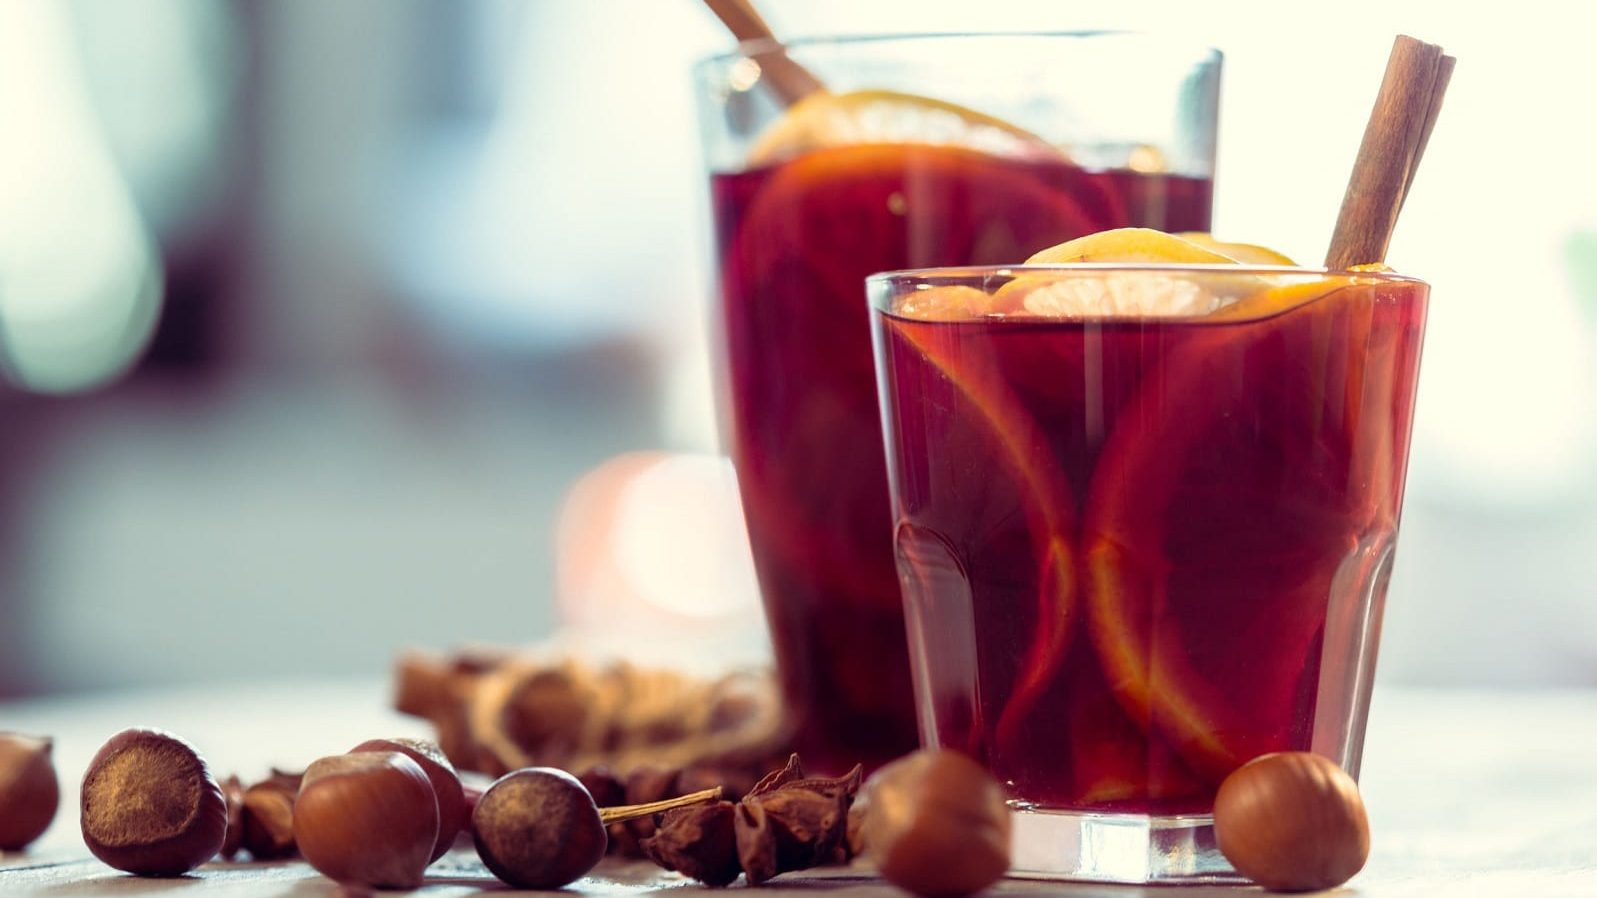 Glögg: Traditional Swedish mulled wine